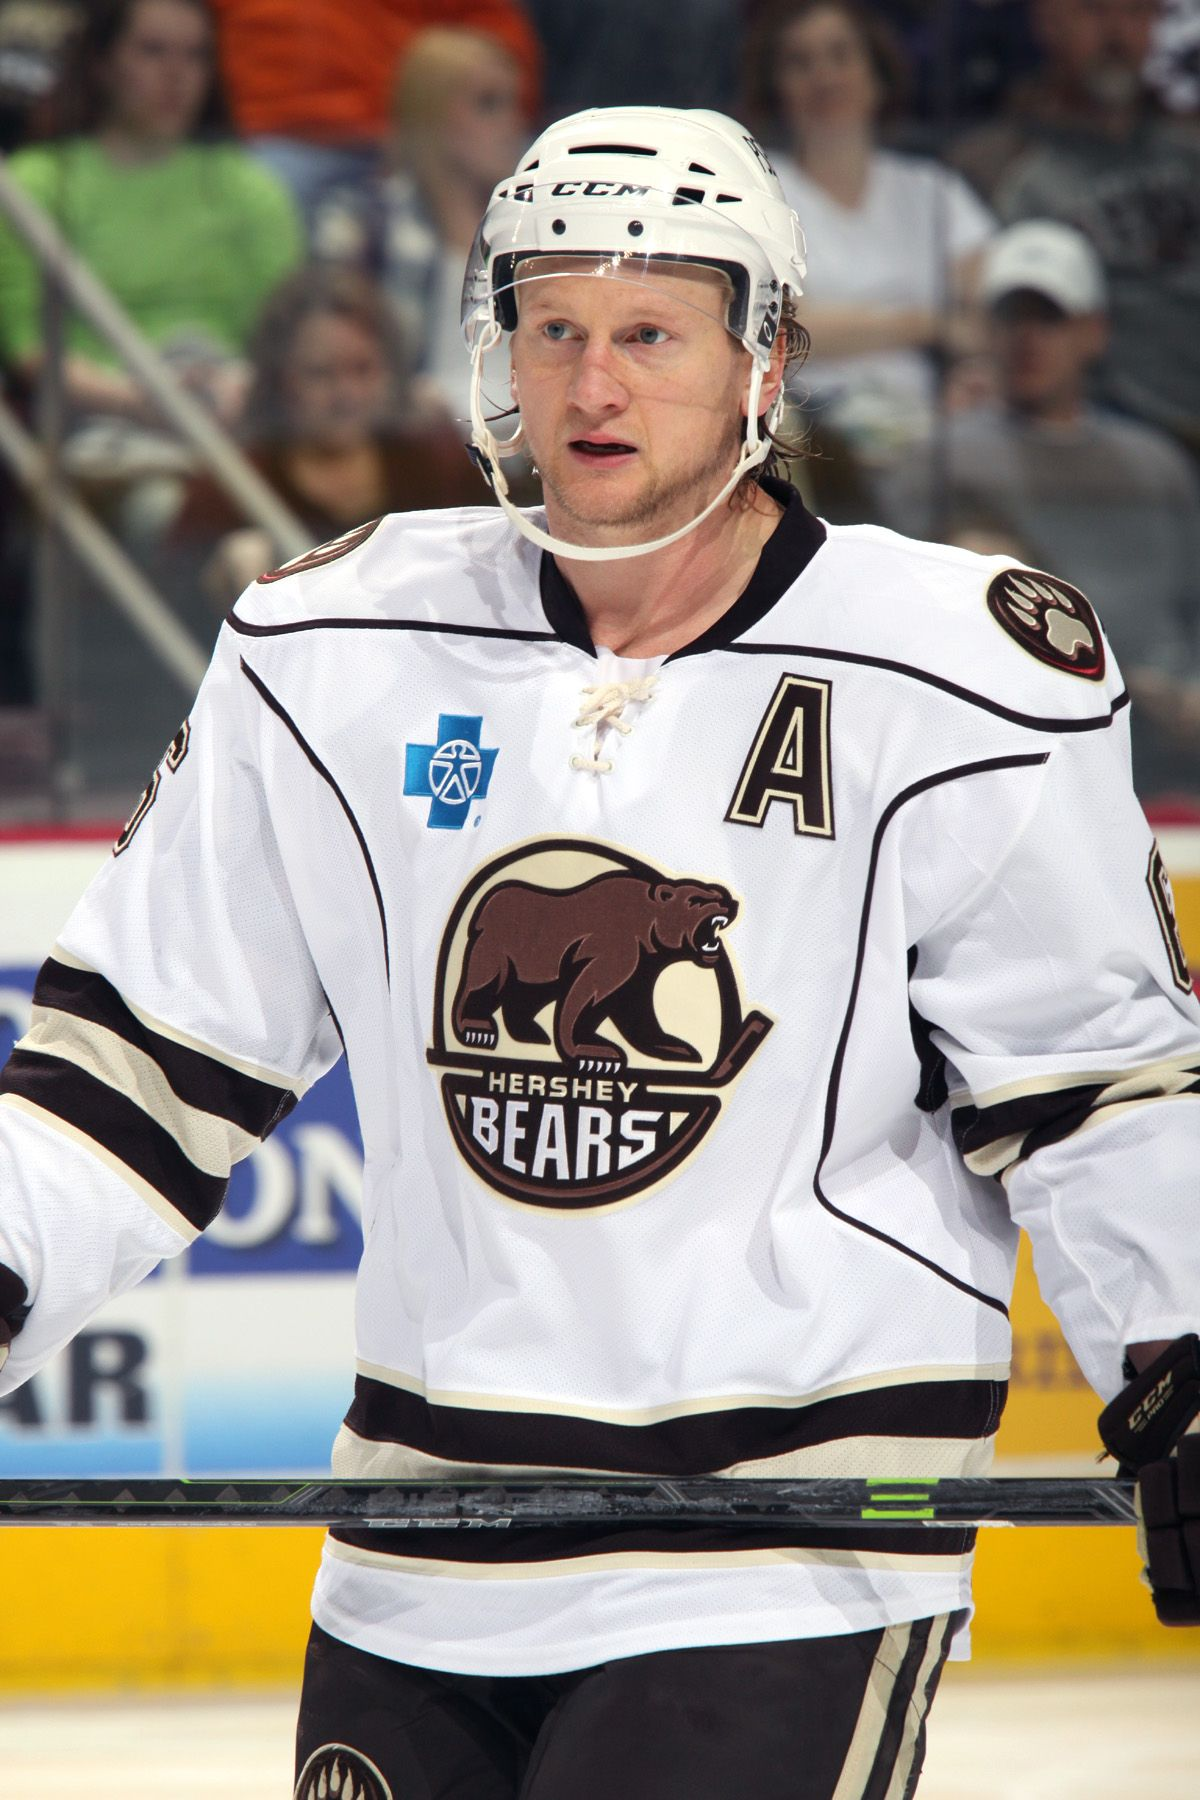 ff4c895daa0 02.07.15 - Hershey Bears alternate captain